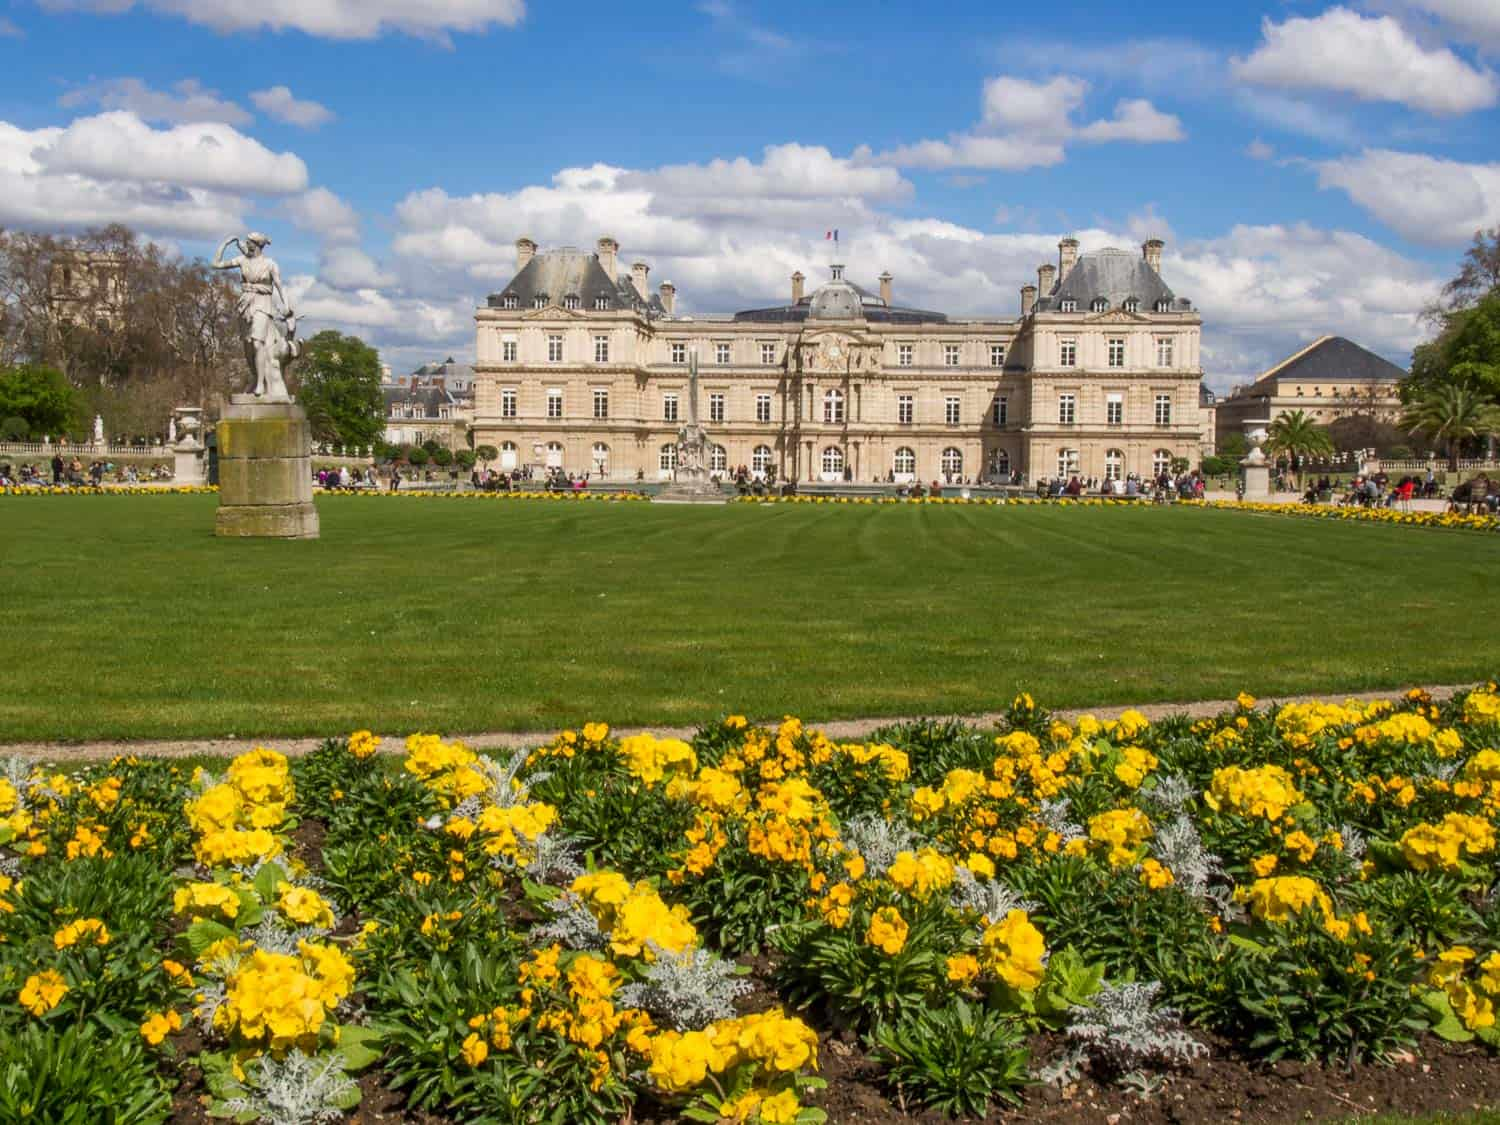 Paris in a day - discover the best one day itinerary including the gorgeous Luxembourg Gardens